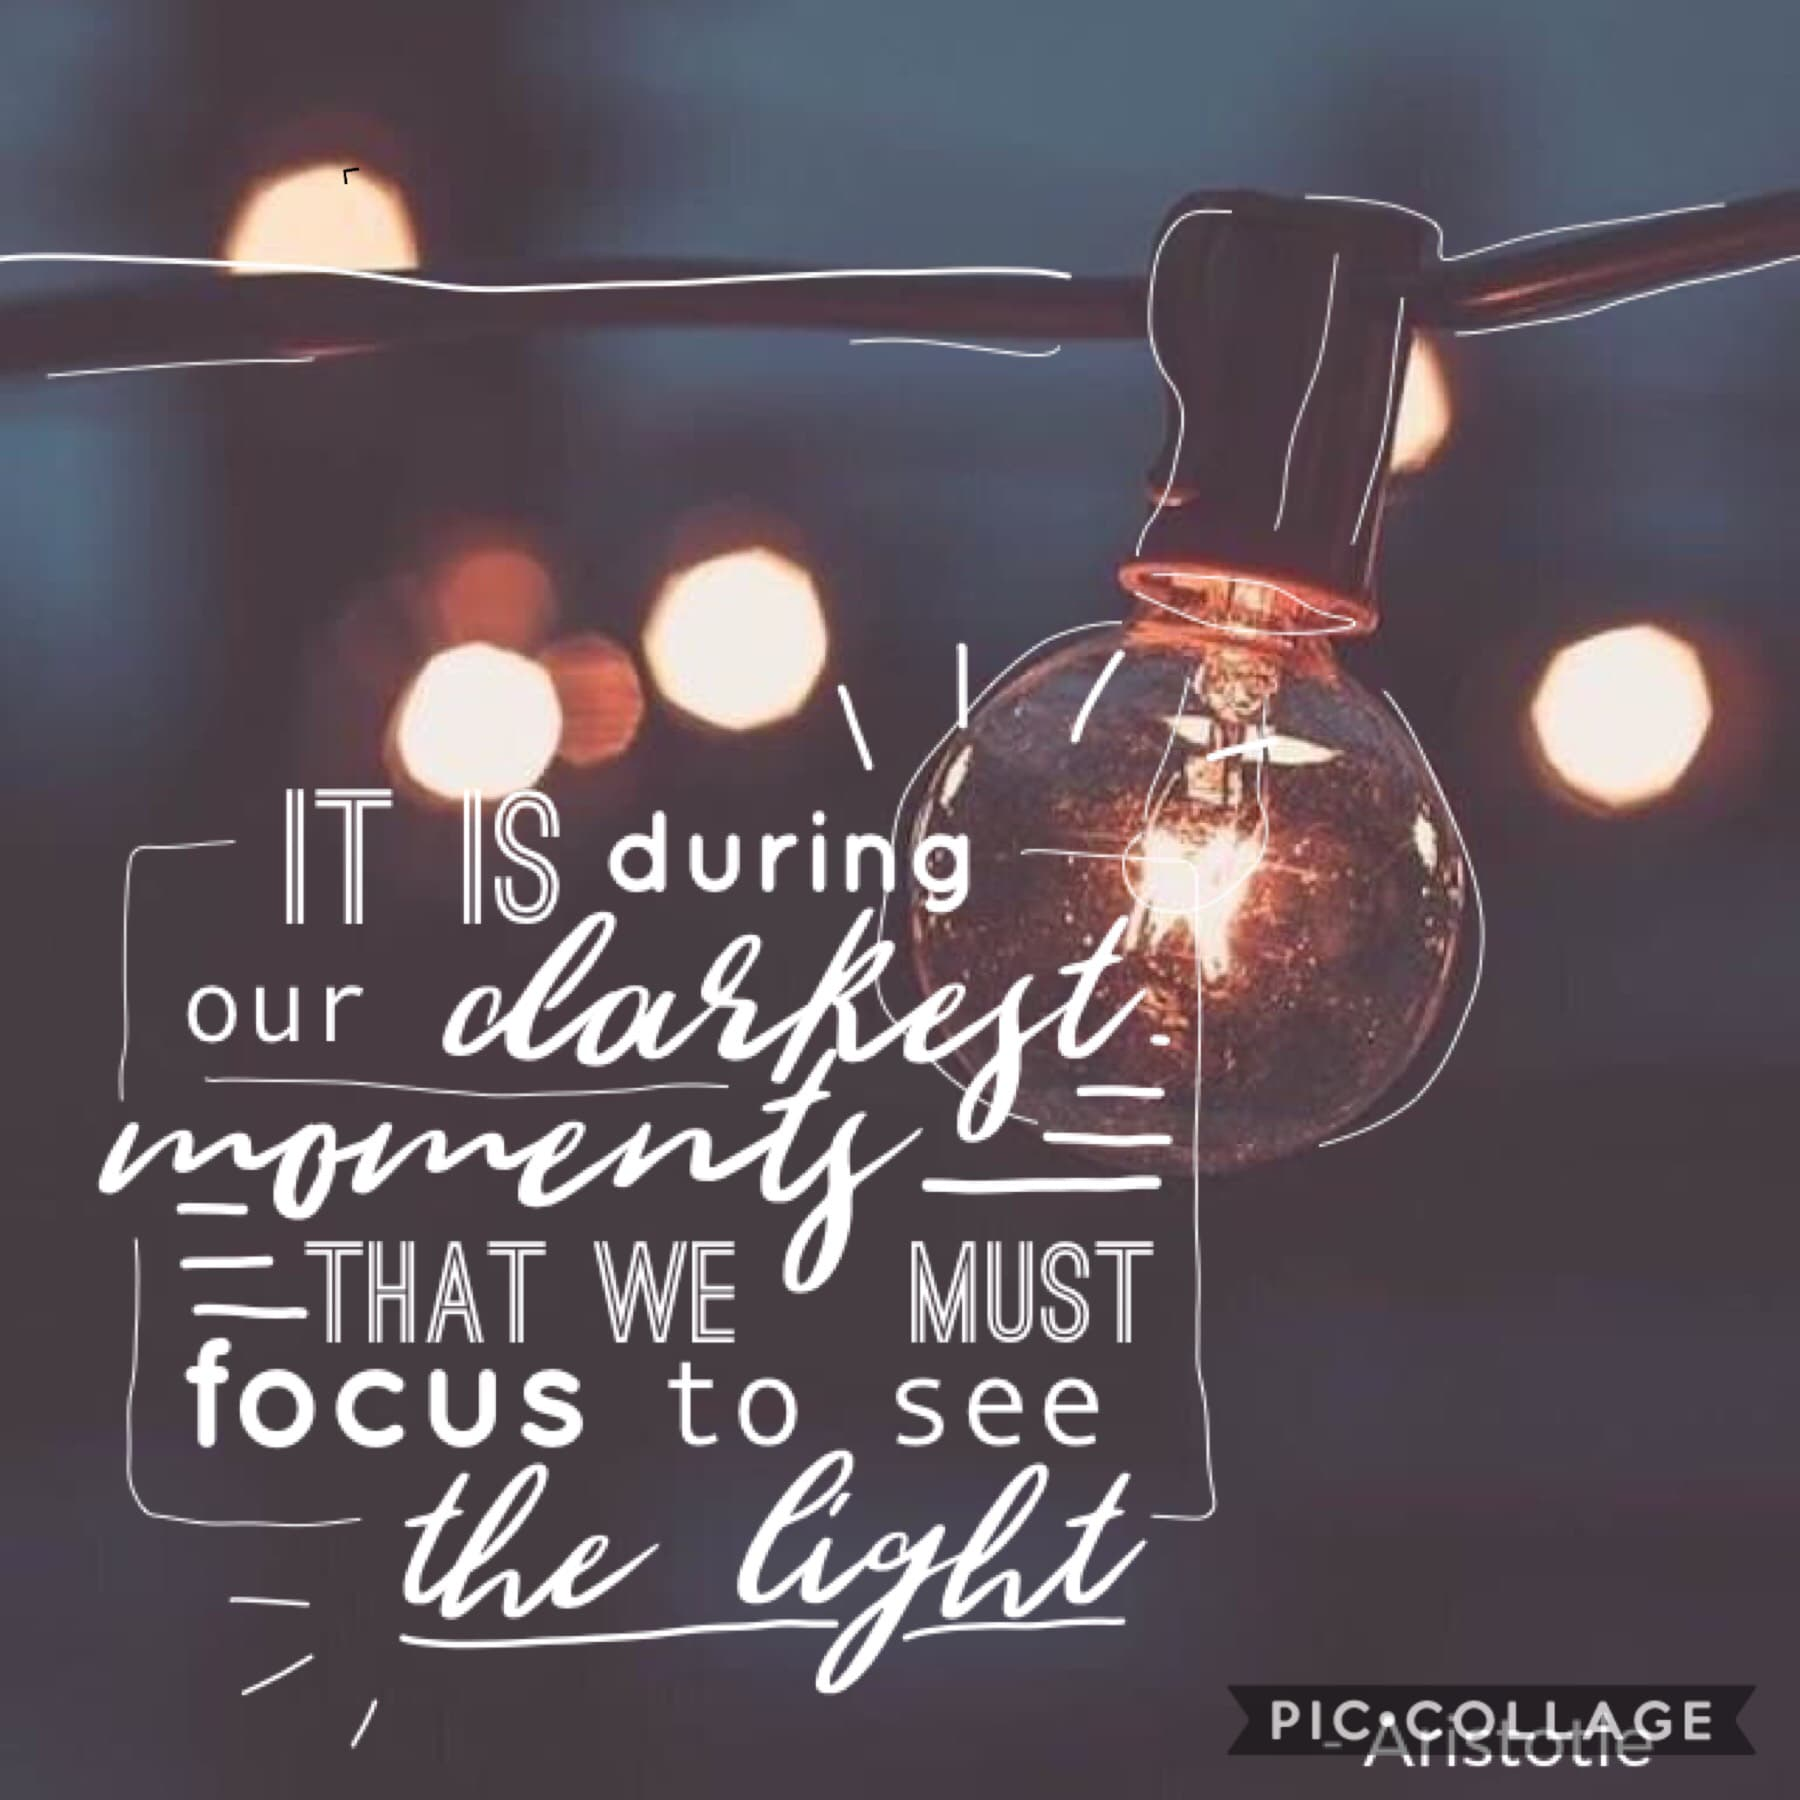 💡It is during our darkest moments that we must focus on the light💡 I really like this! ———— Side note: I randomly decided to change my icon but it's only temporary